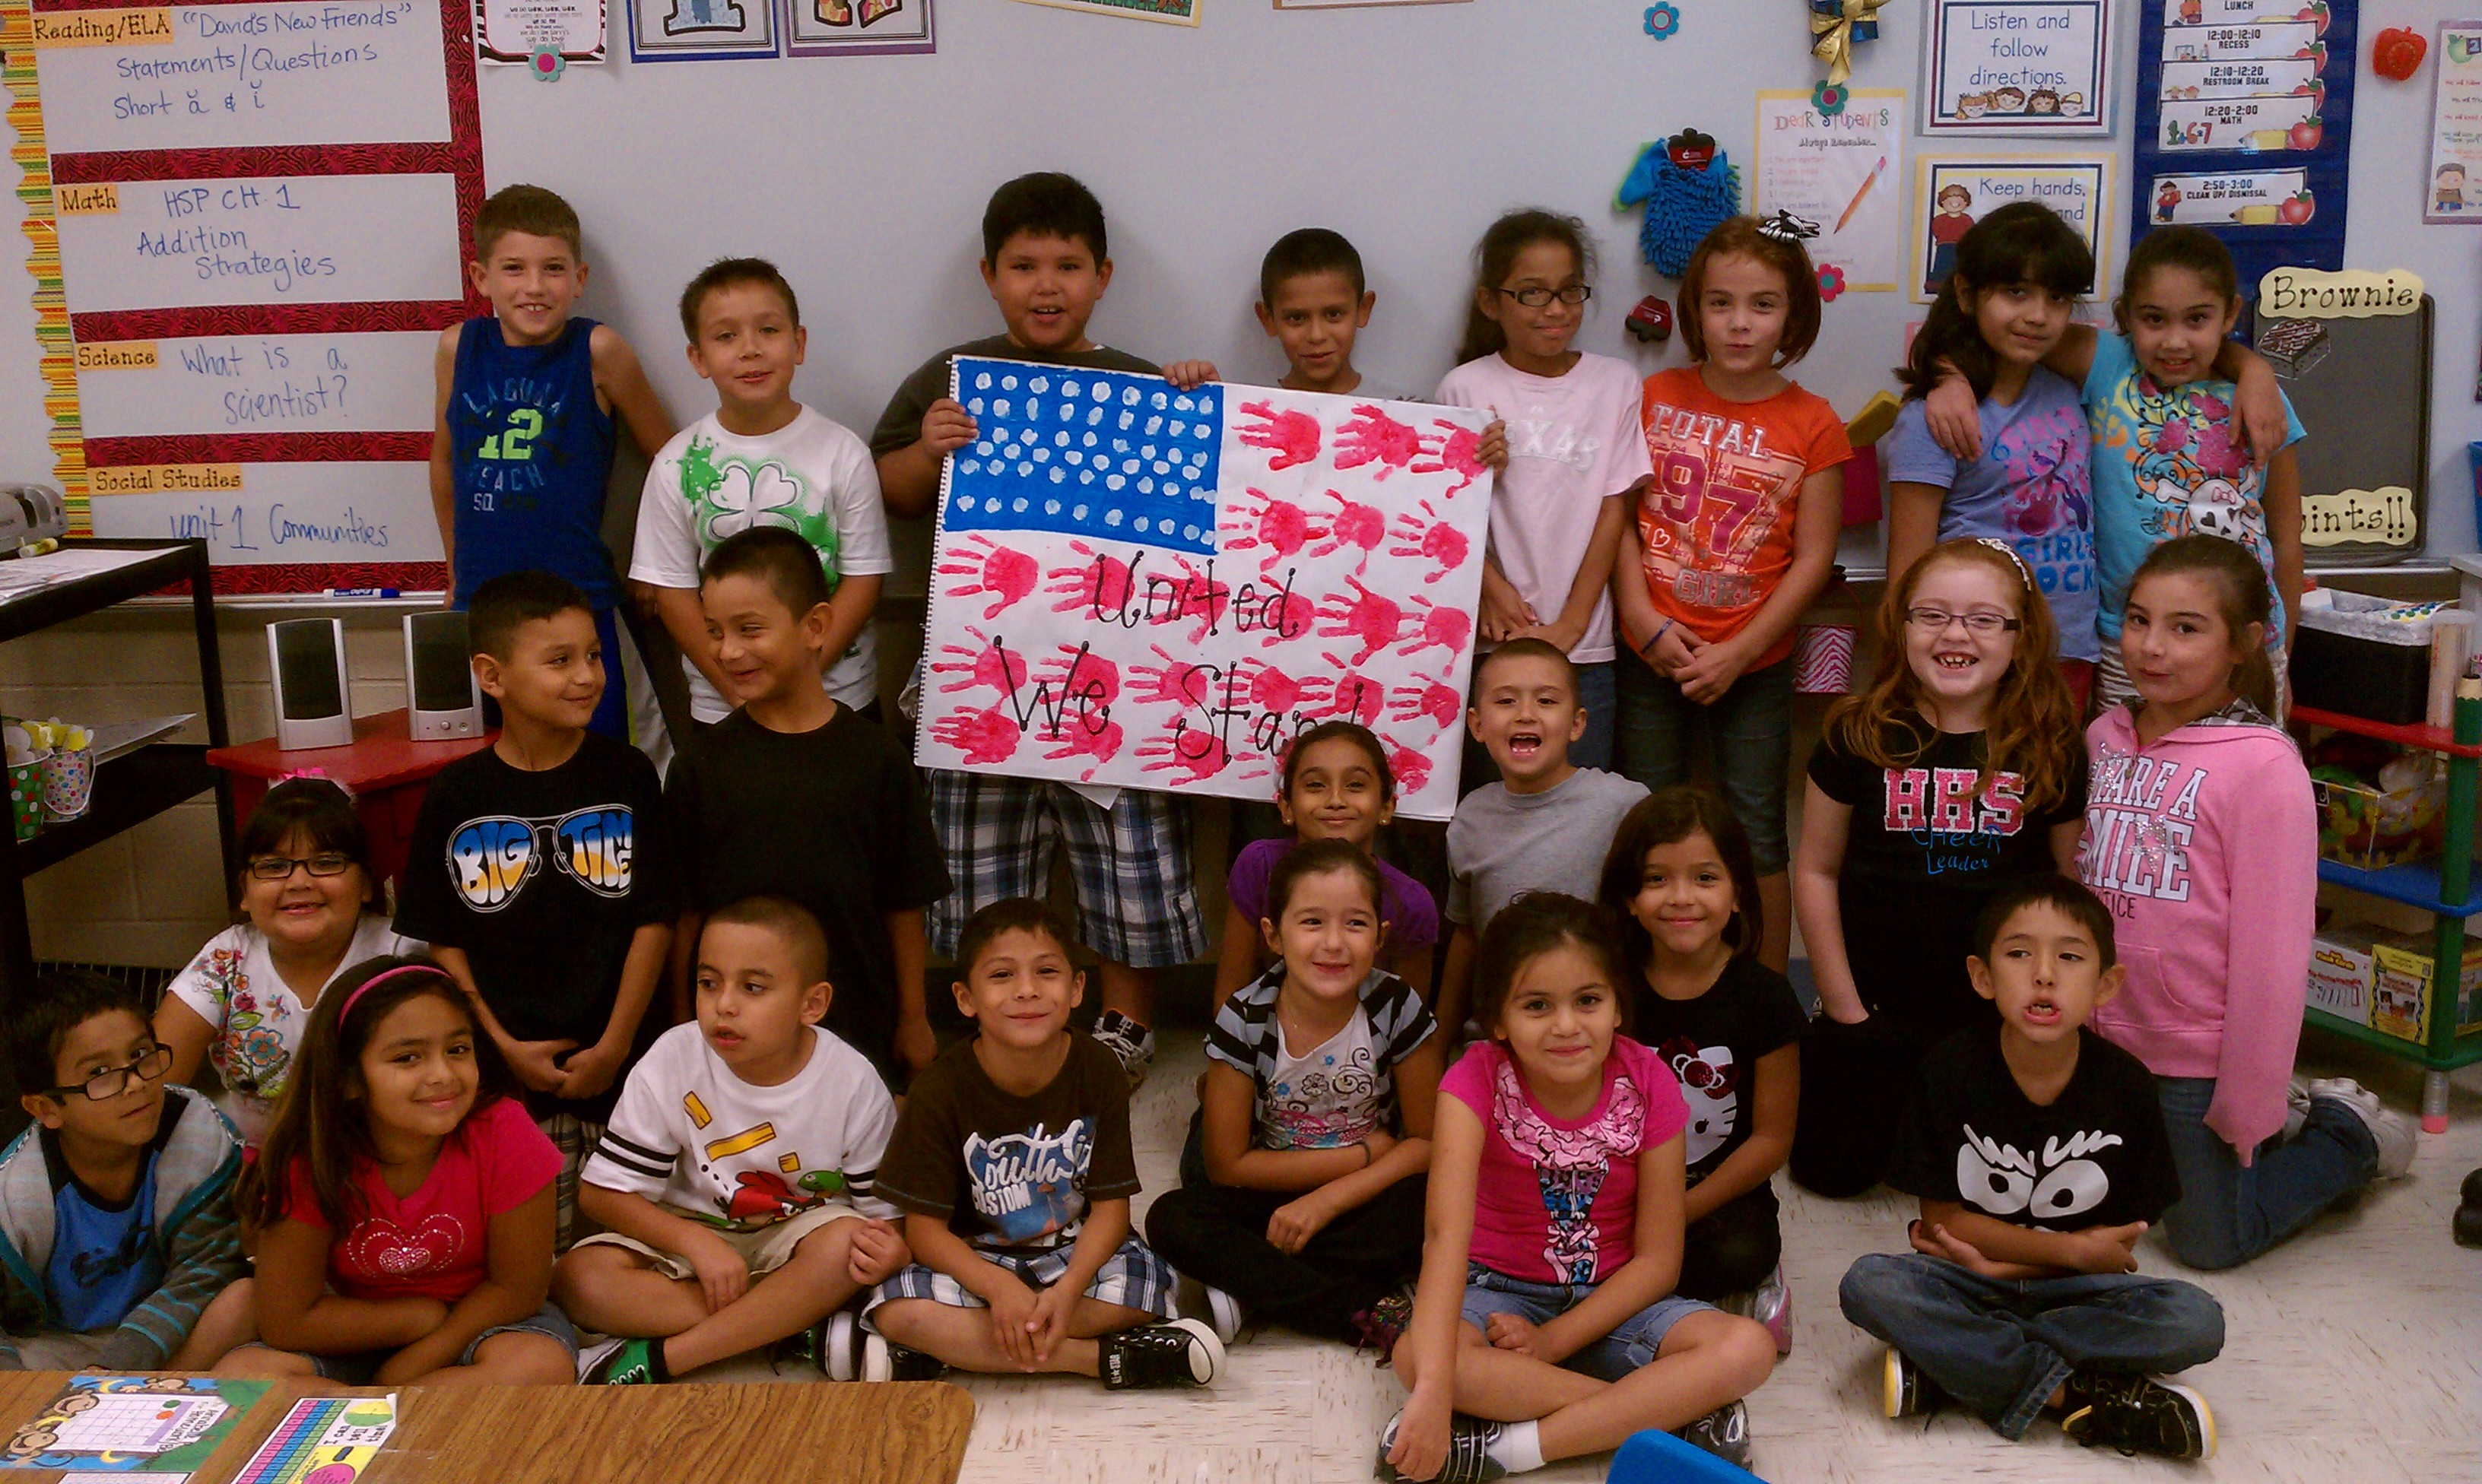 Dr. Rodriguez 2nd grade class shares Pledge of Allegiance project